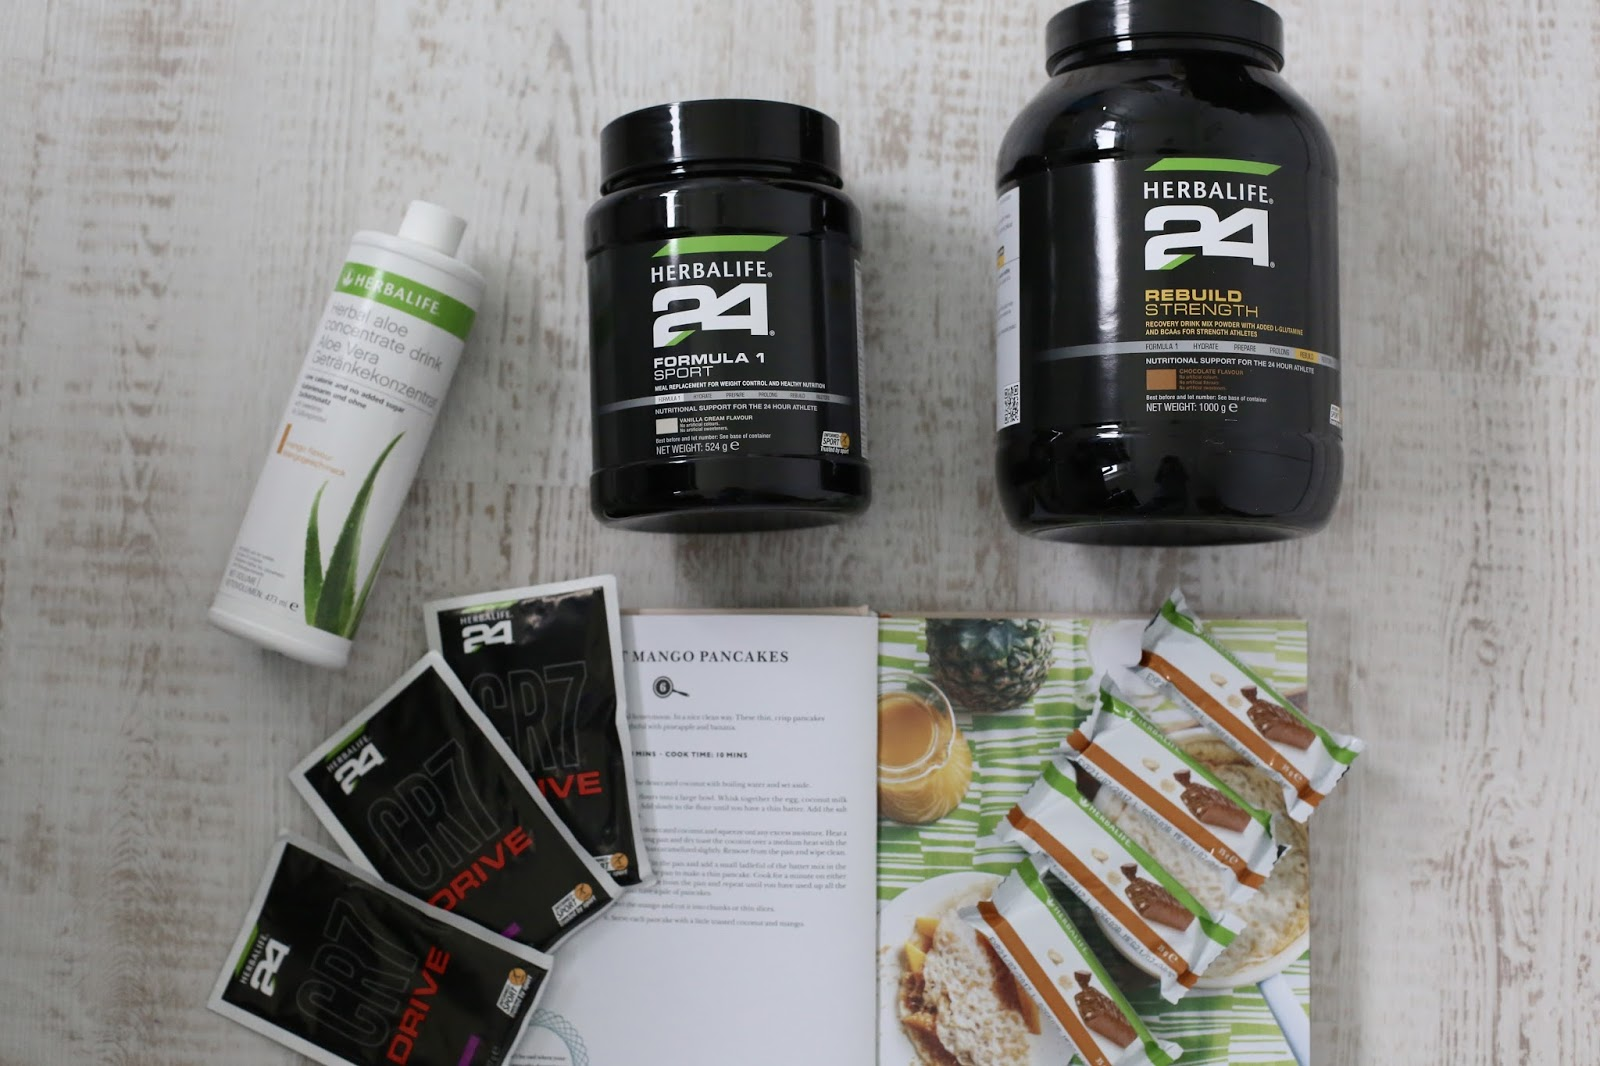 Herbalife product